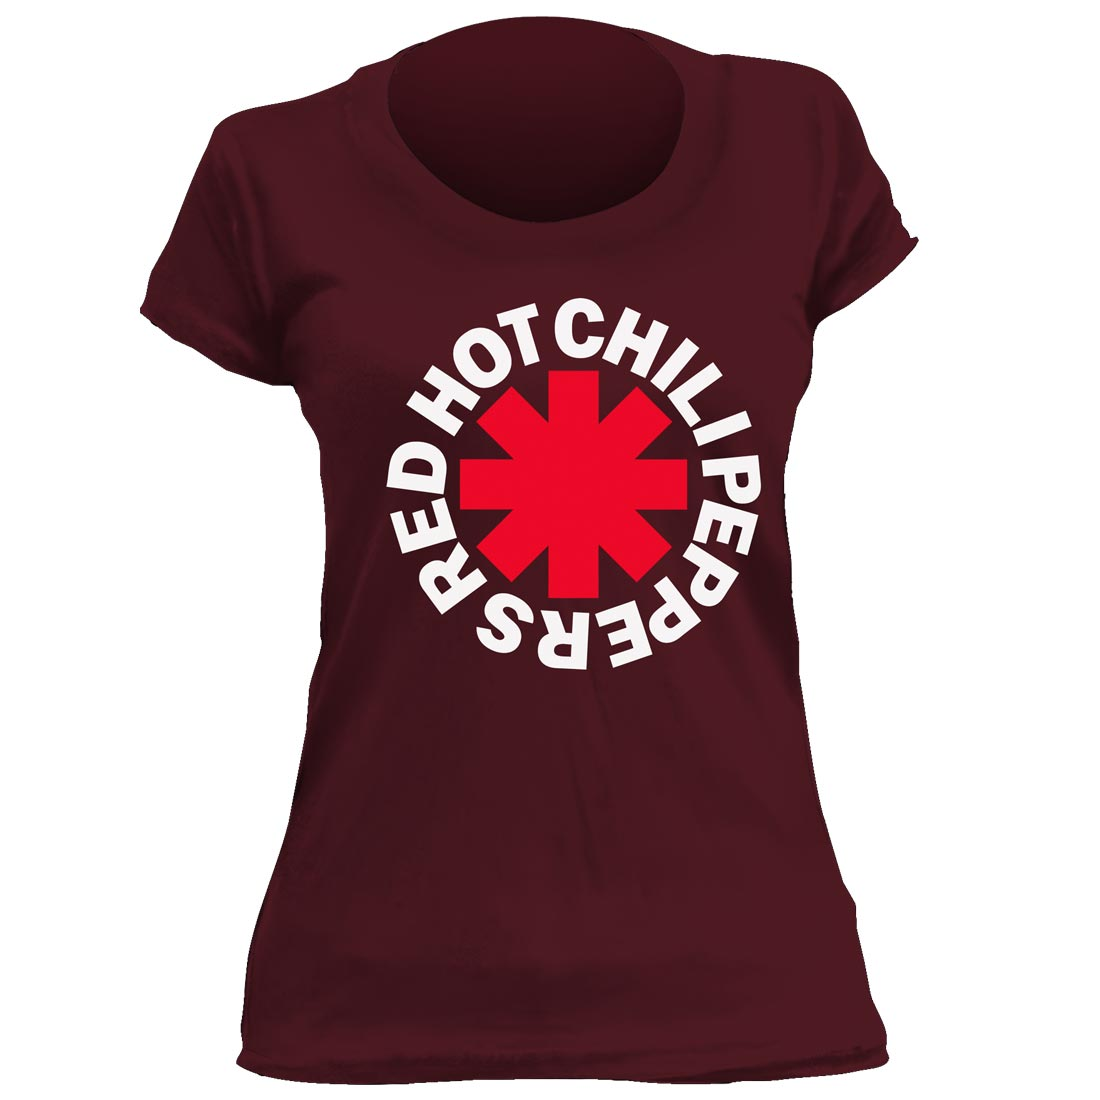 Camiseta Feminina Red Hot Chili Peppers- Vinho